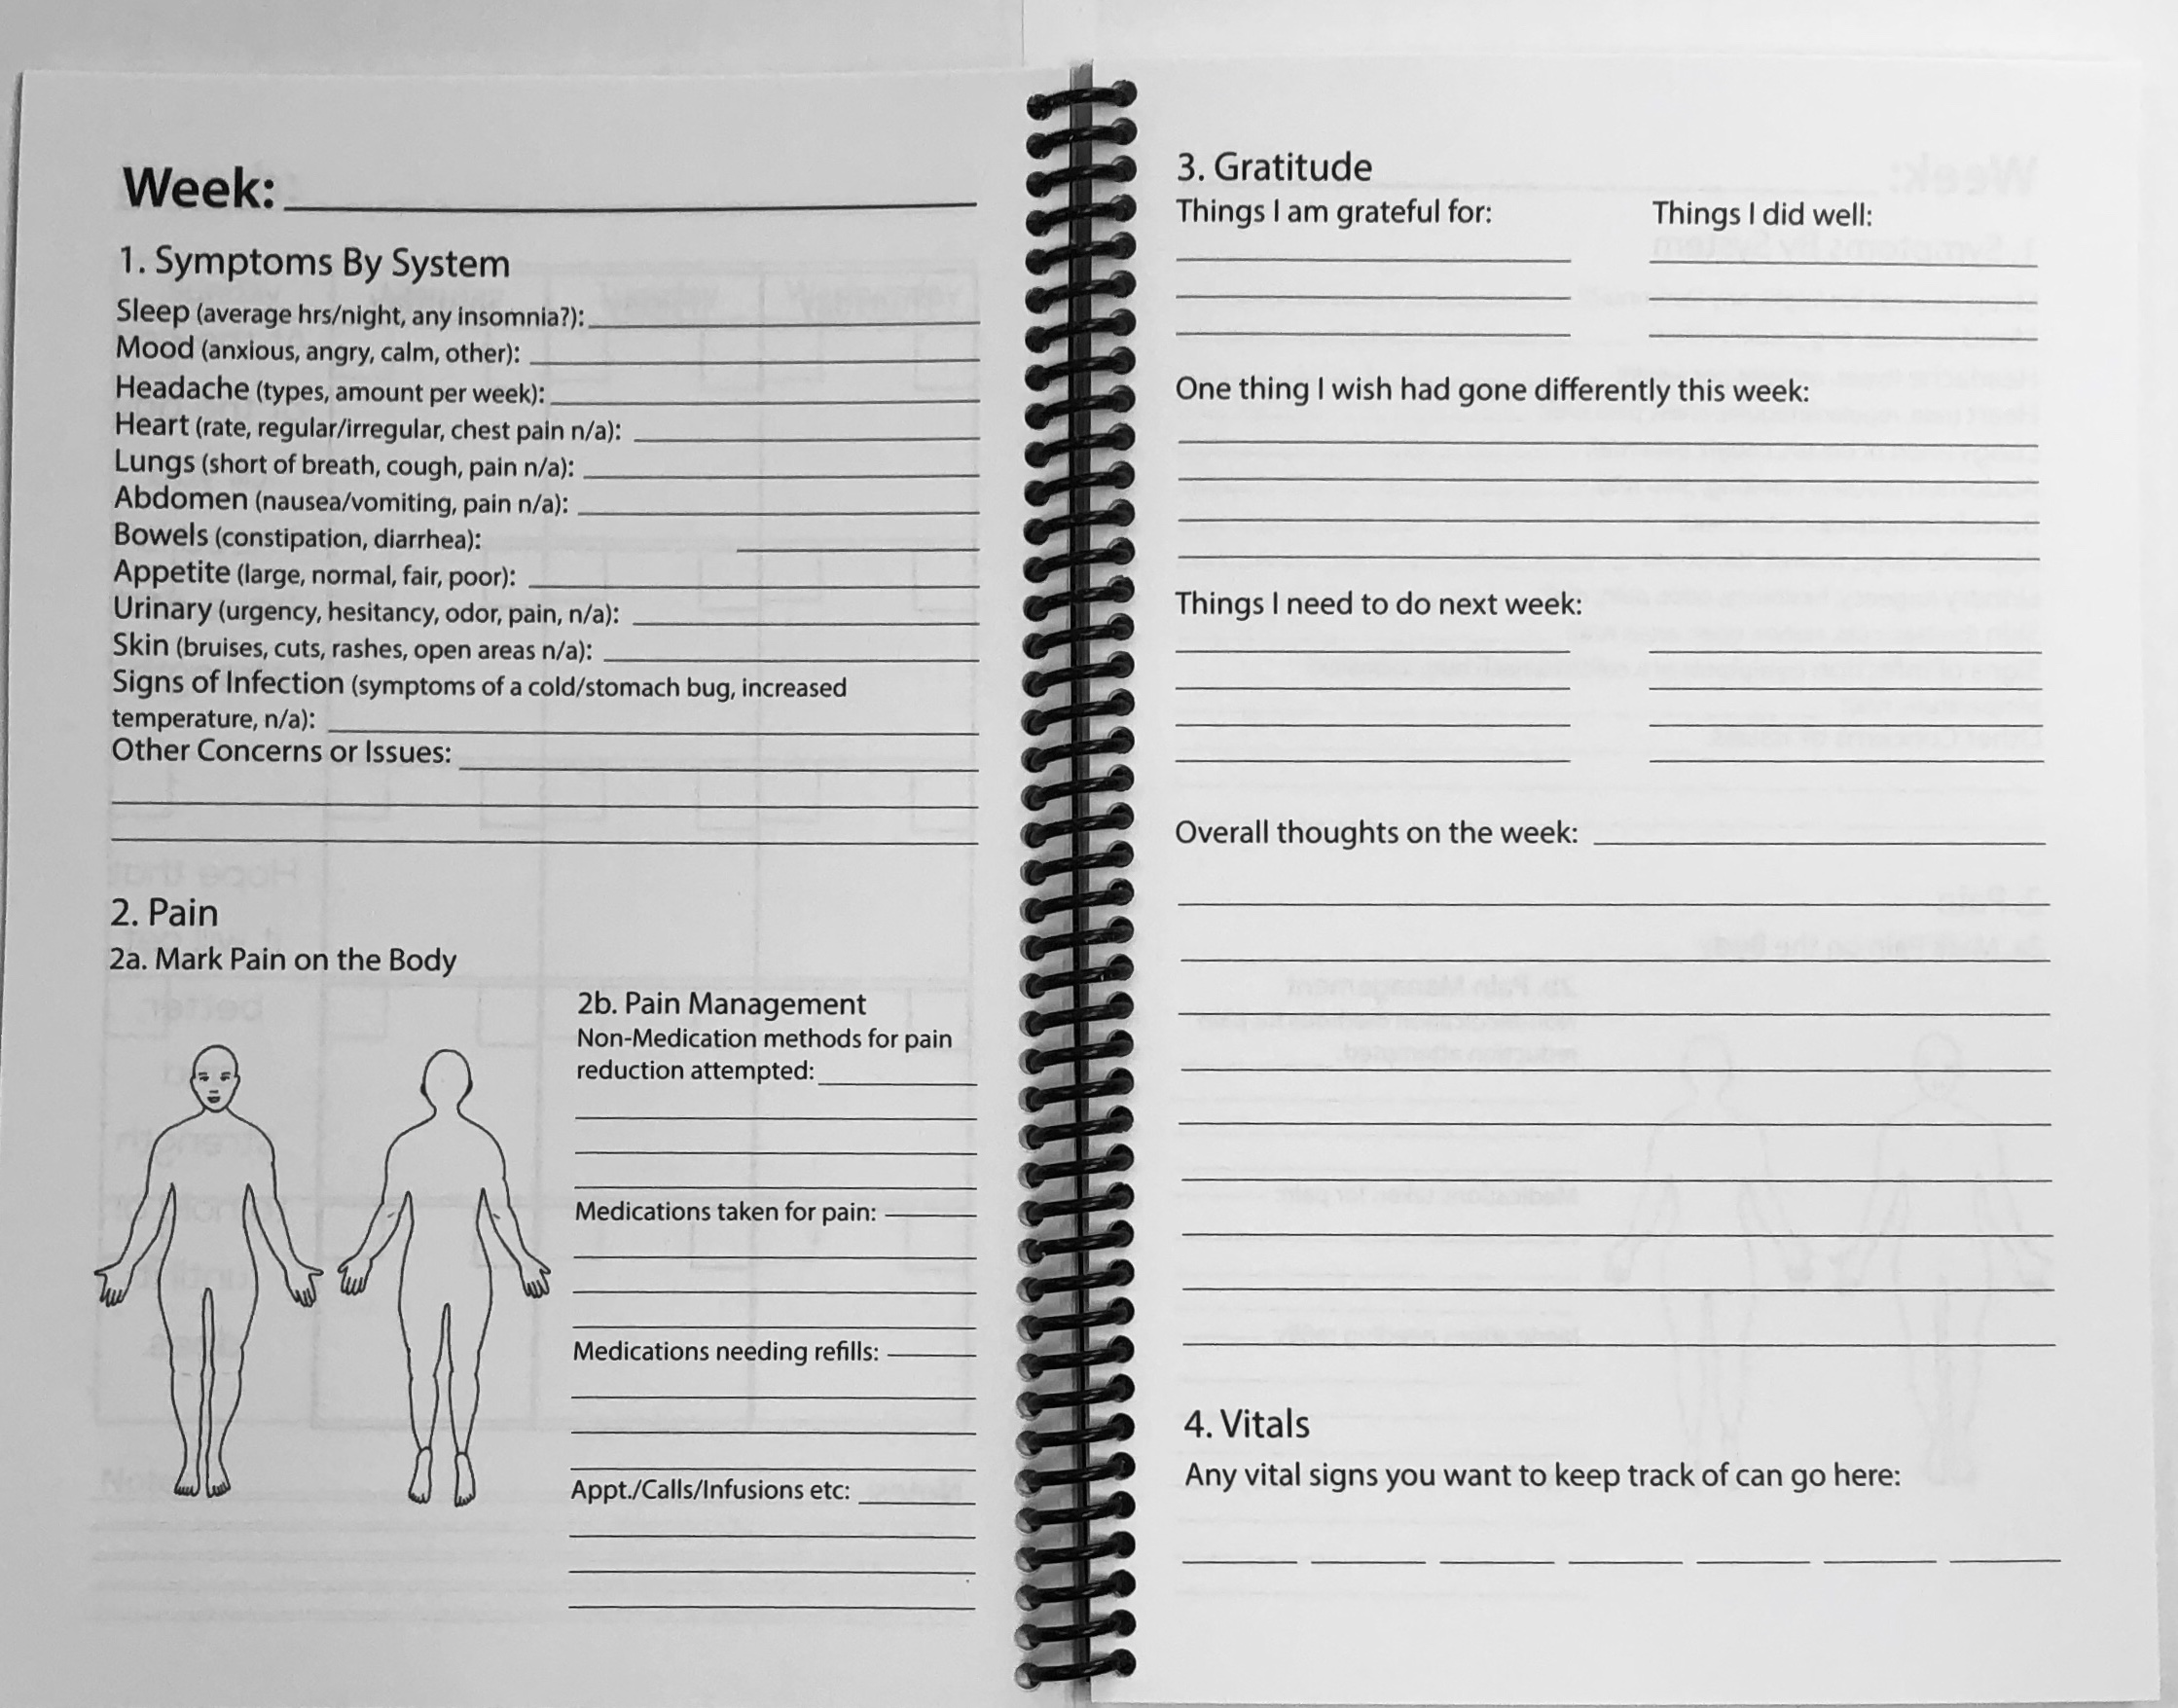 This is what the tracker pages will look like. You will have room to jot down symptoms from each part of the body, as well as pain info and an area for gratitude, journaling and upcoming appts as well as a spot to record vitals for the week!